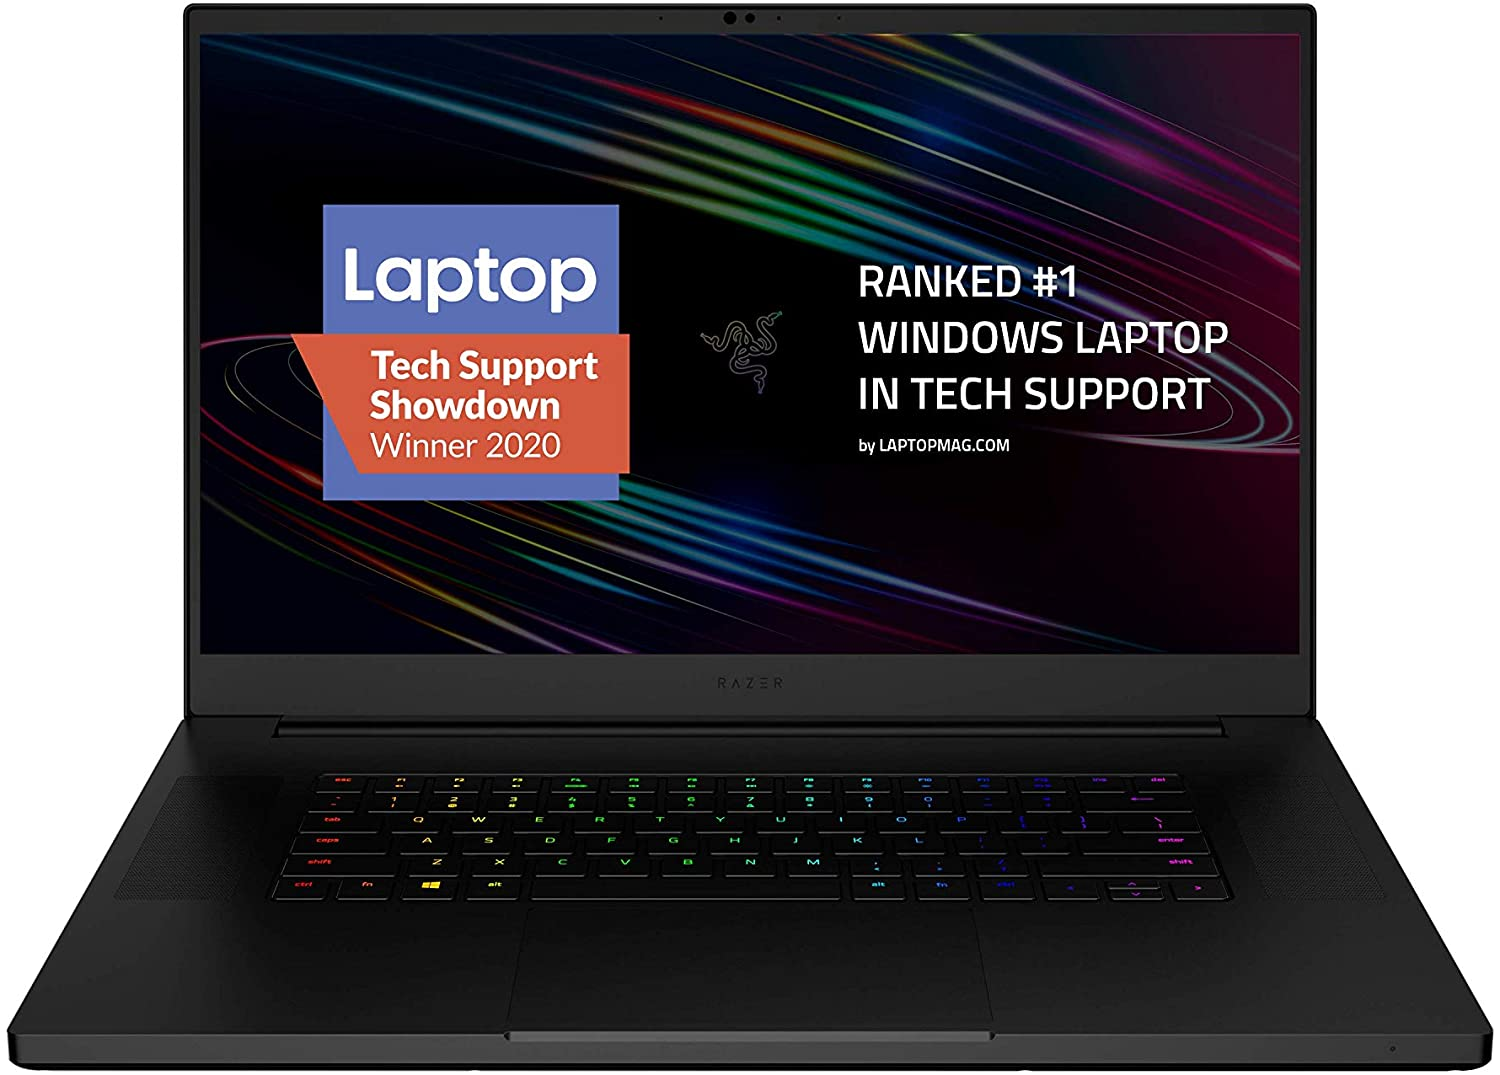 "Razer Blade Pro 17 Gaming Laptop 2020: Intel Core i7-10875H 8-Core, NVIDIA GeForce RTX 2070 Max-Q, 17.3"" FHD 300Hz, 16GB RAM, 512GB SSD, CNC Aluminum, Chroma RGB, Thunderbolt 3, SD Card Reader"